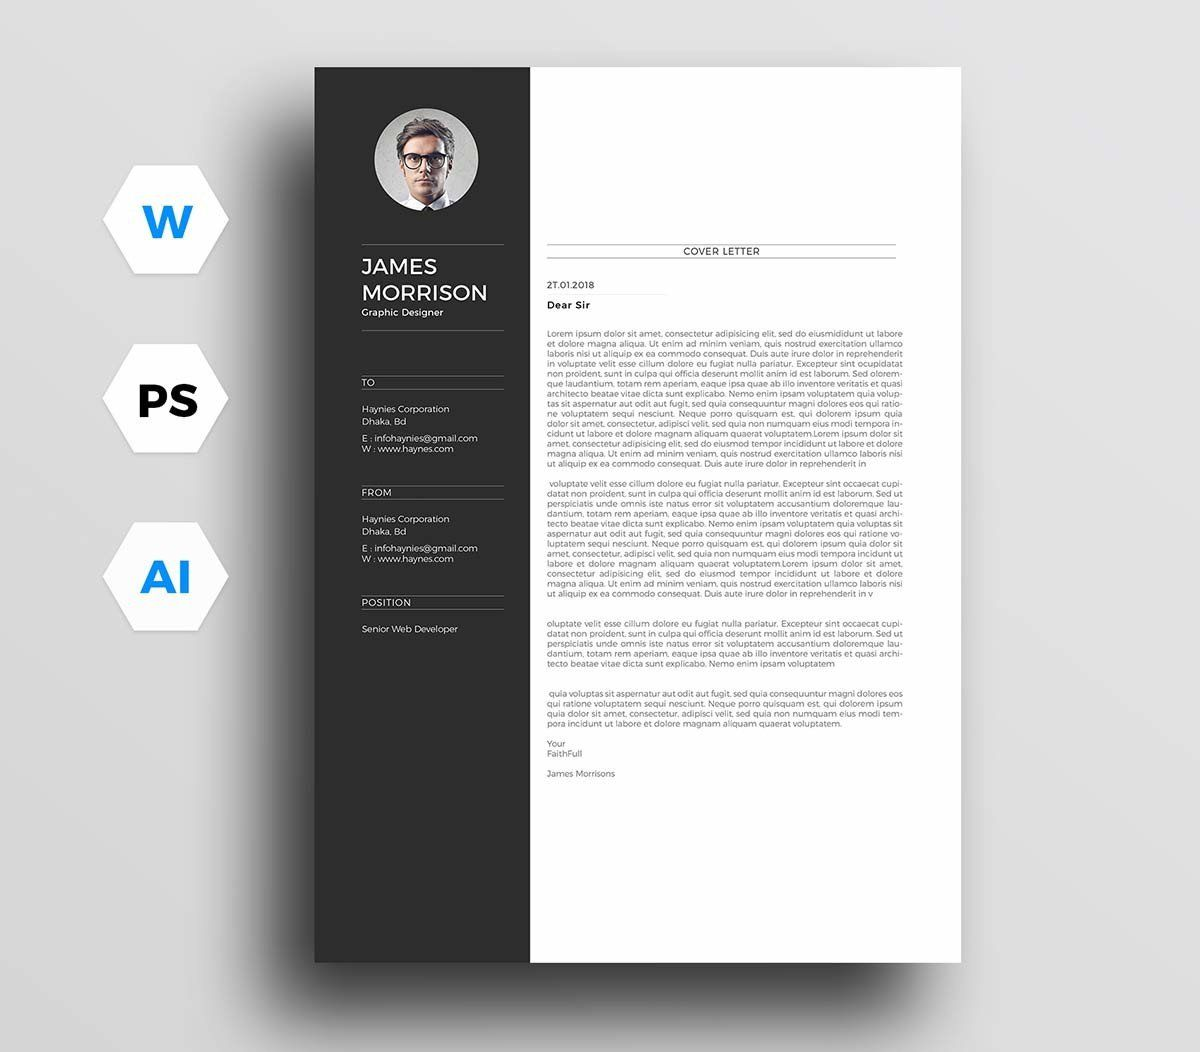 003 Astounding Microsoft Cover Letter Template Image  Templates Free Resume Word Download 2010 PageFull